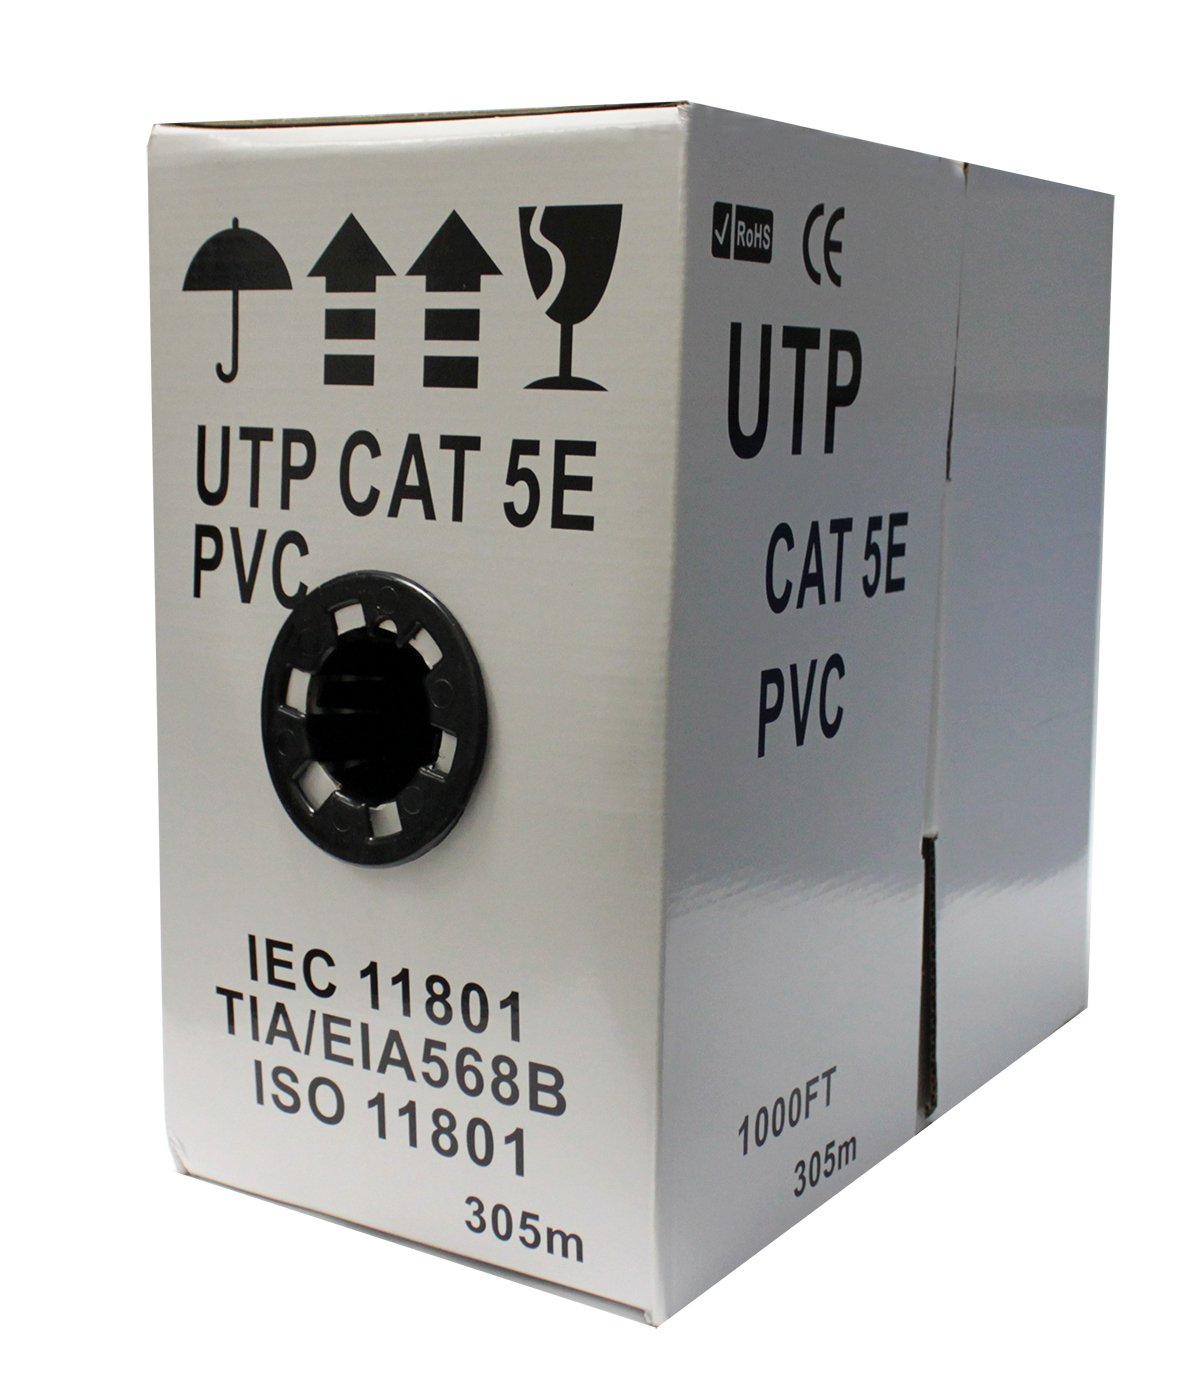 HDVD™ Cat5e Ethernet Cable / Wire UTP Pull Box, 1000ft Cat-5e White, 24AWG, 350MHZ, UTP Solid PVC